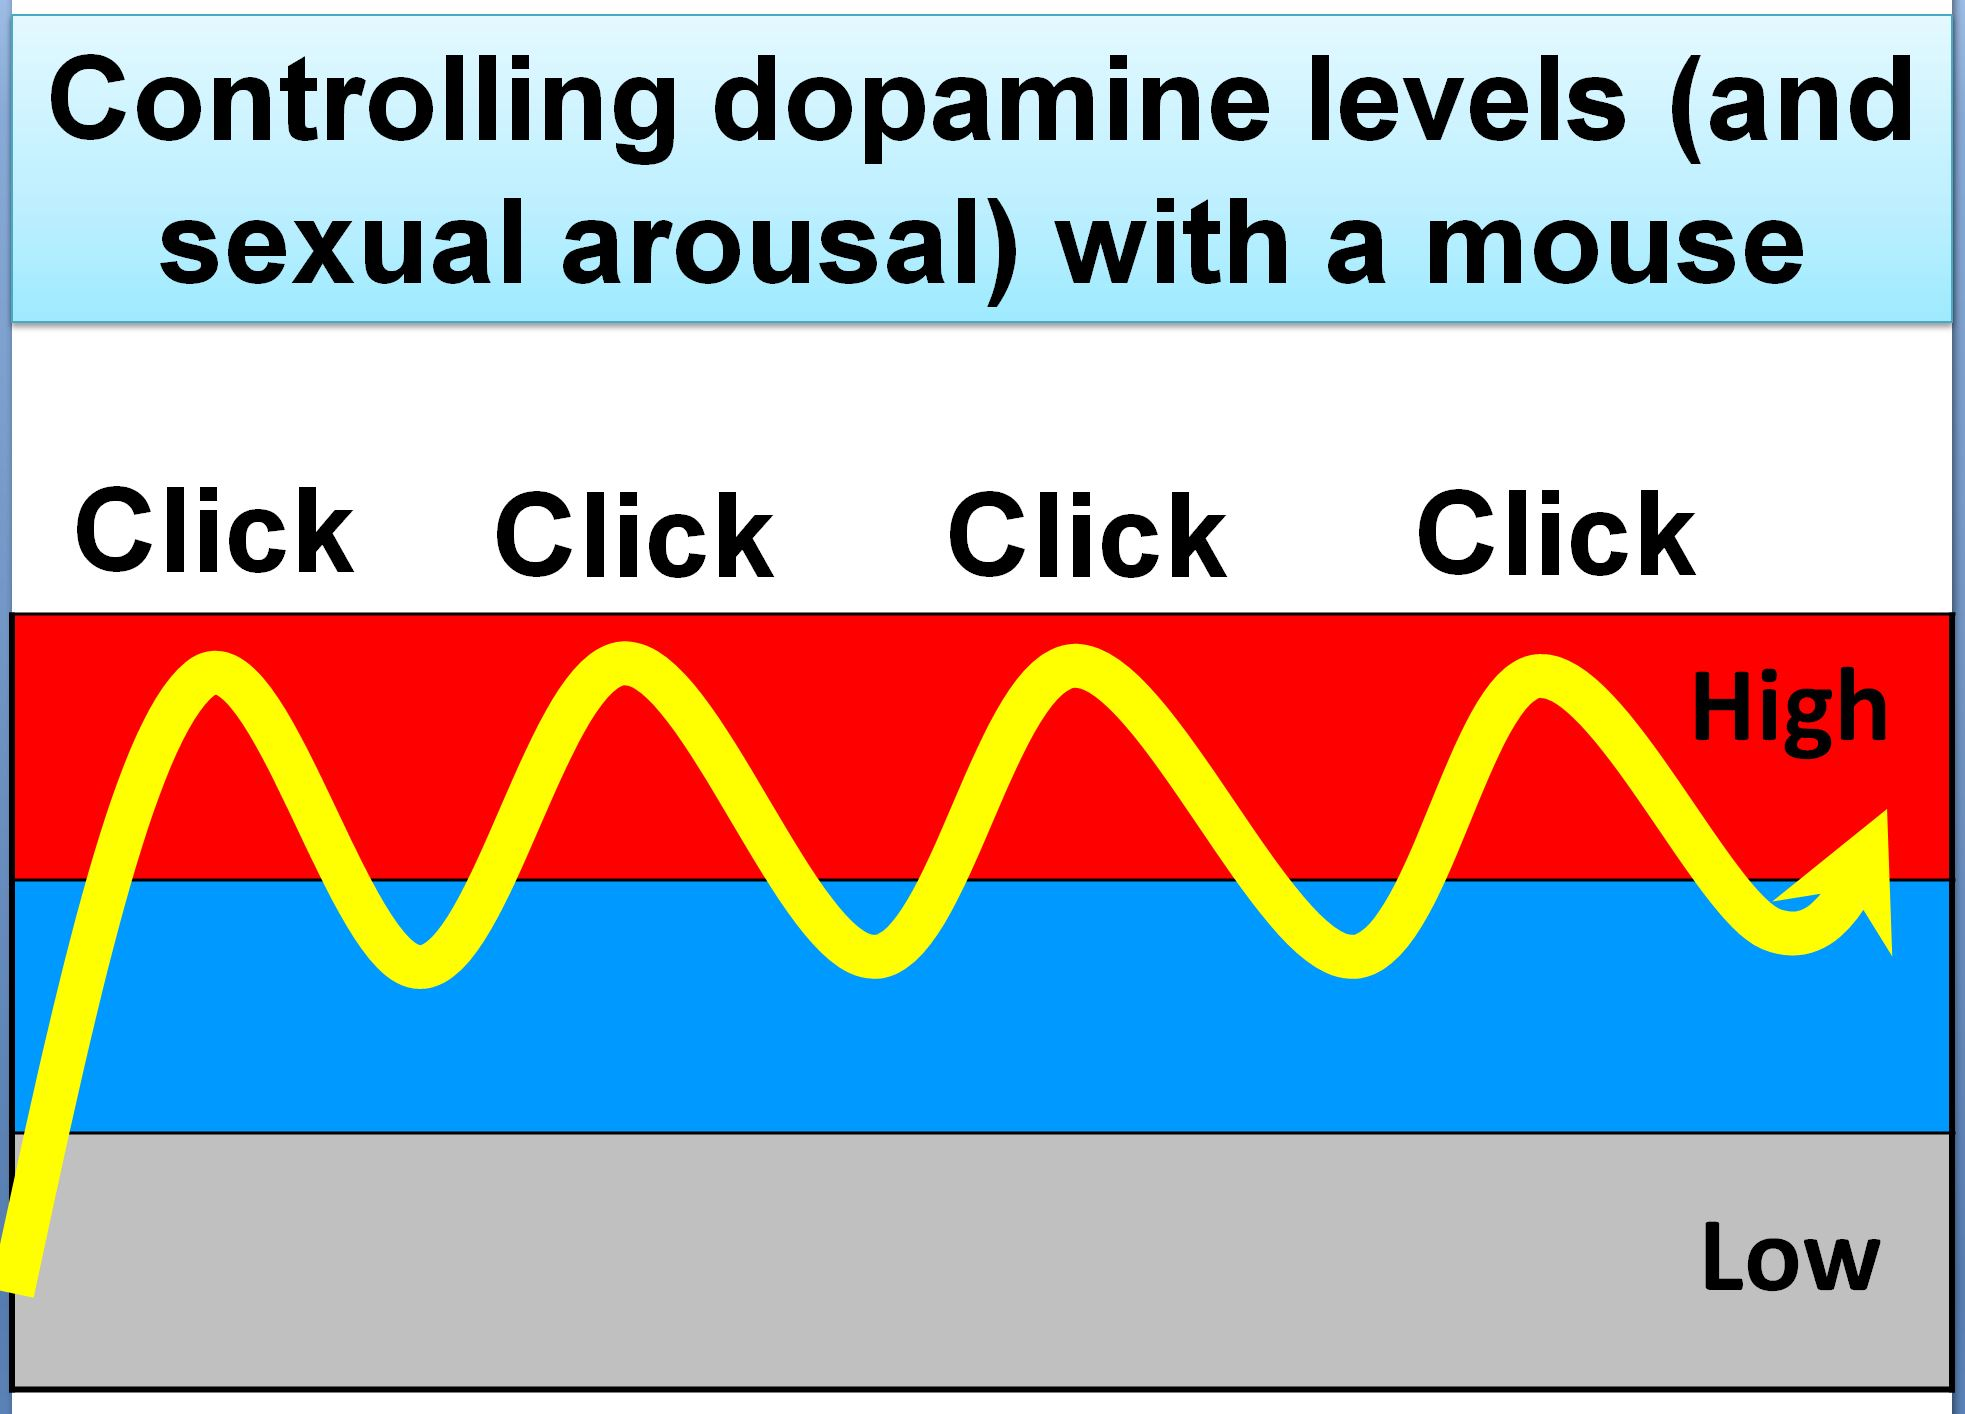 controlling dopamine levels (and sexual arousal) during porn viewing, with the clicks of a mouse